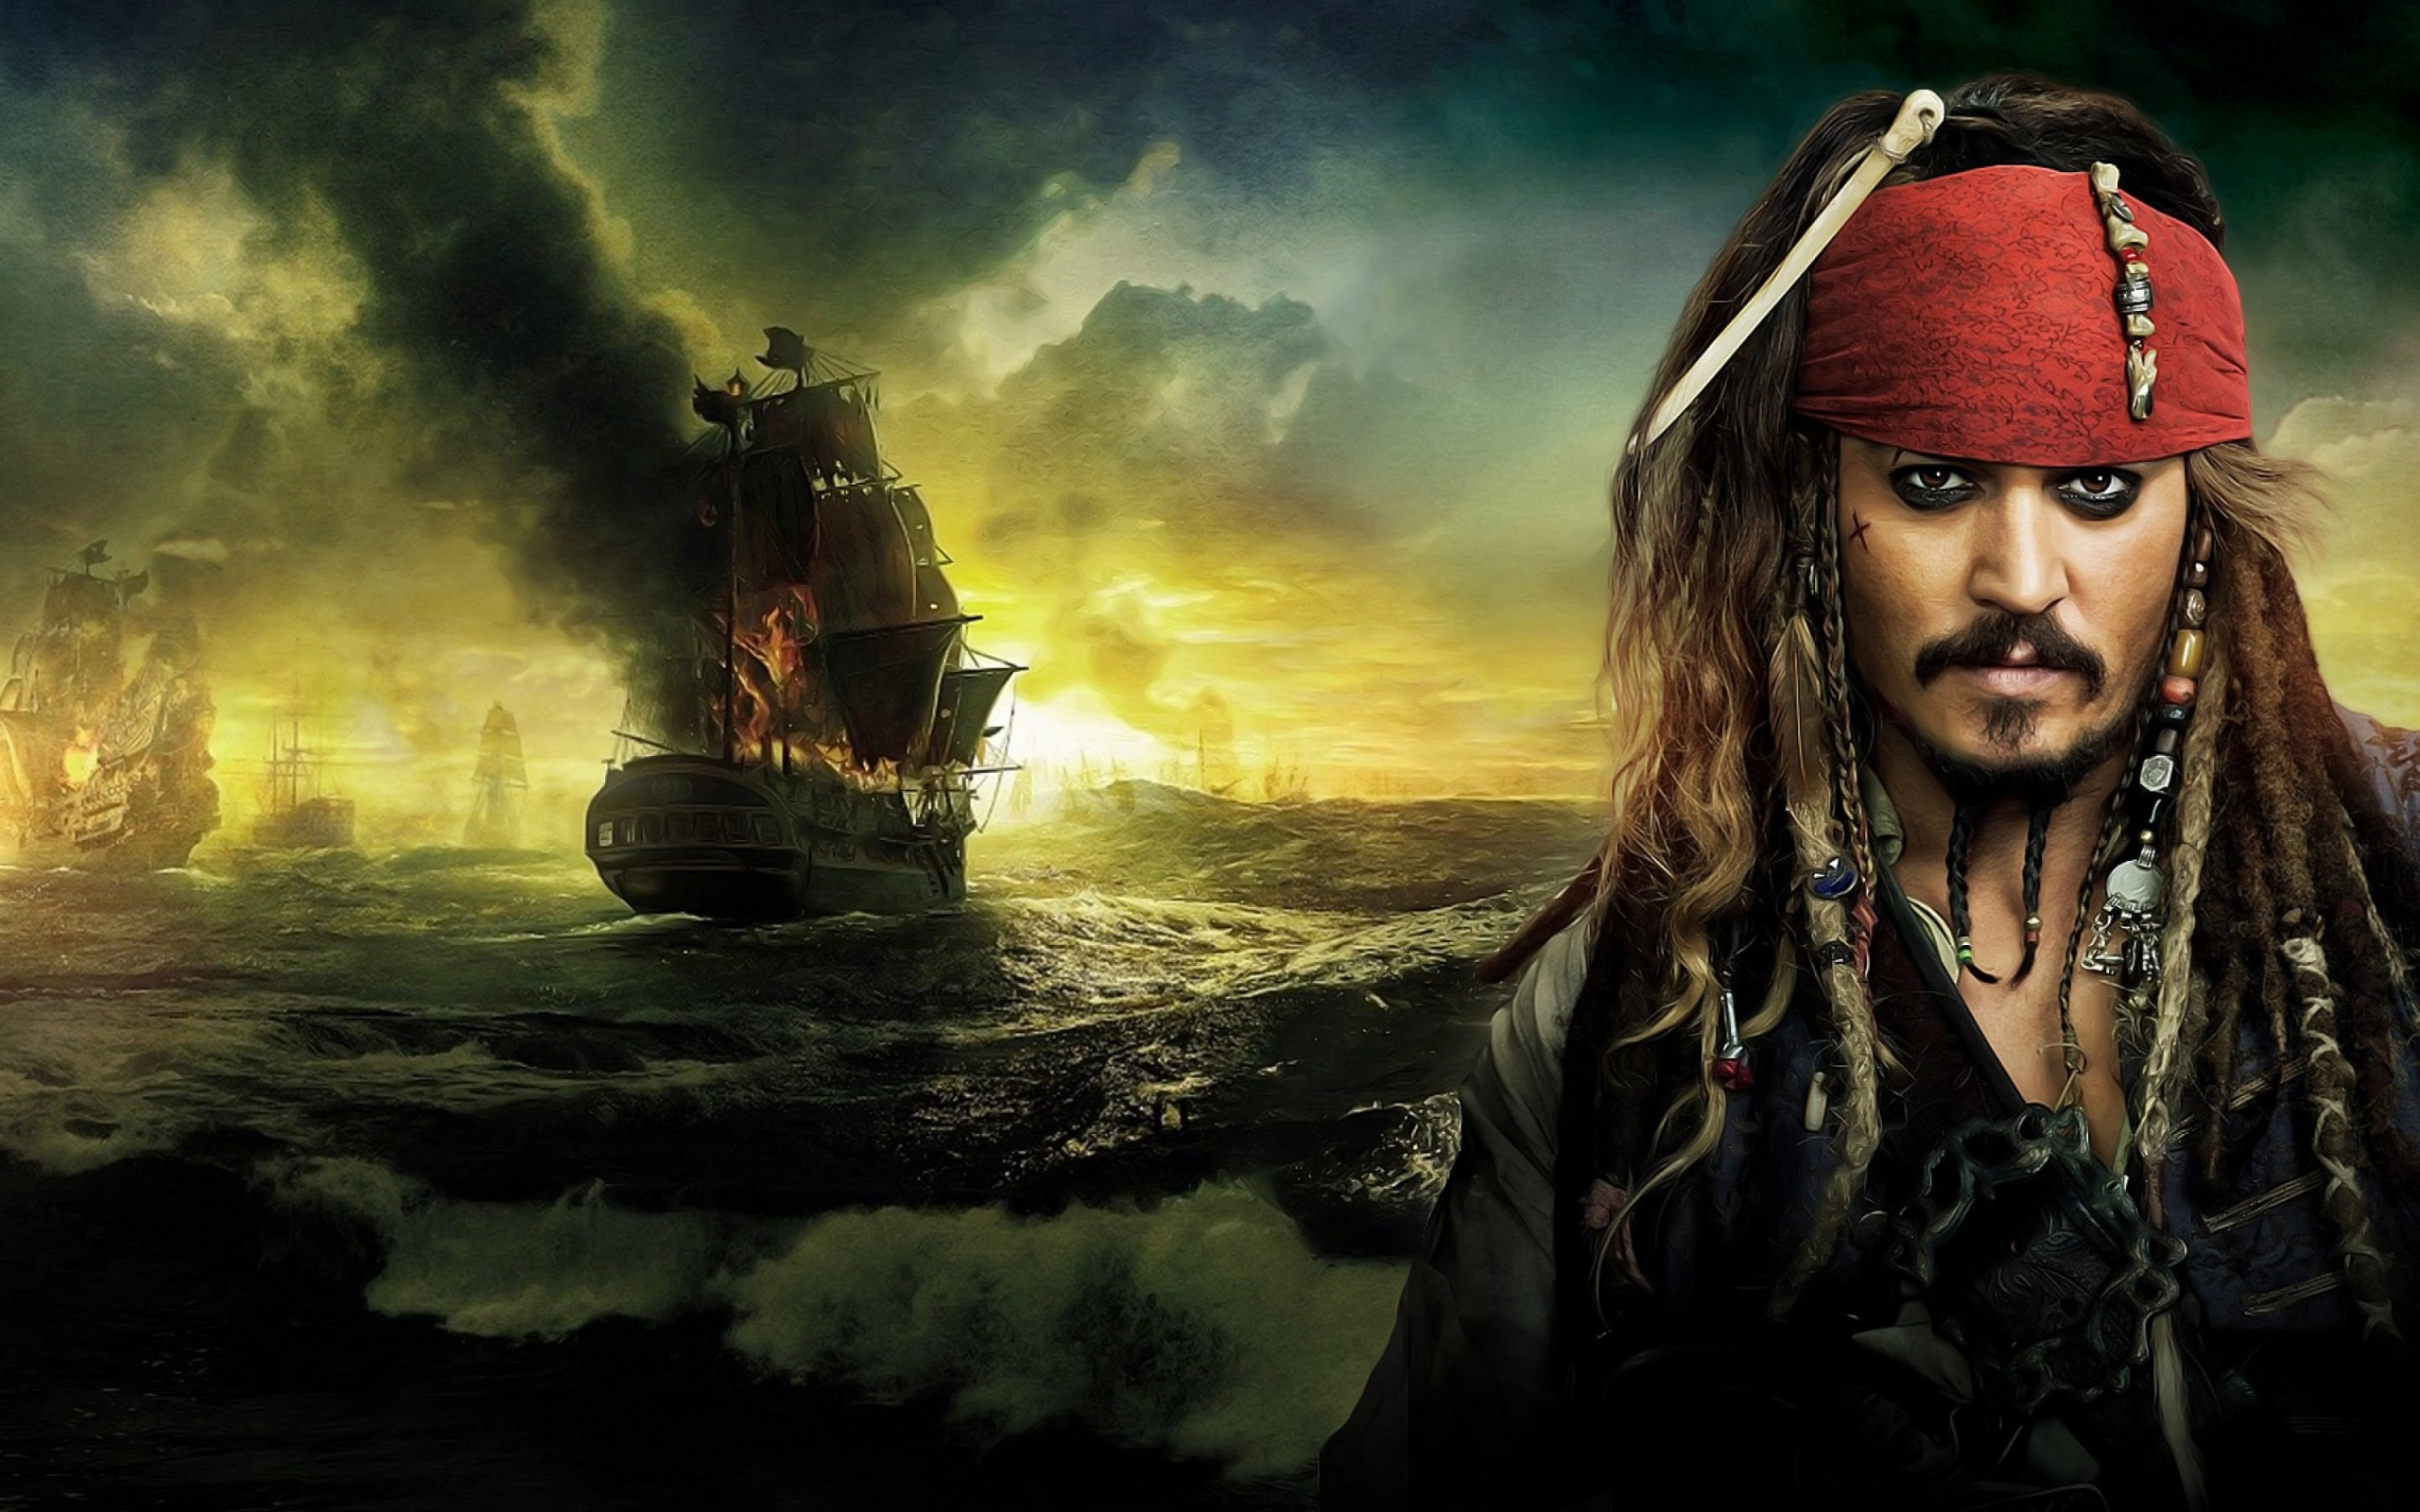 Jack Sparrow - Pirates Of The Caribbean Wallpaper for Desktop 2560x1600